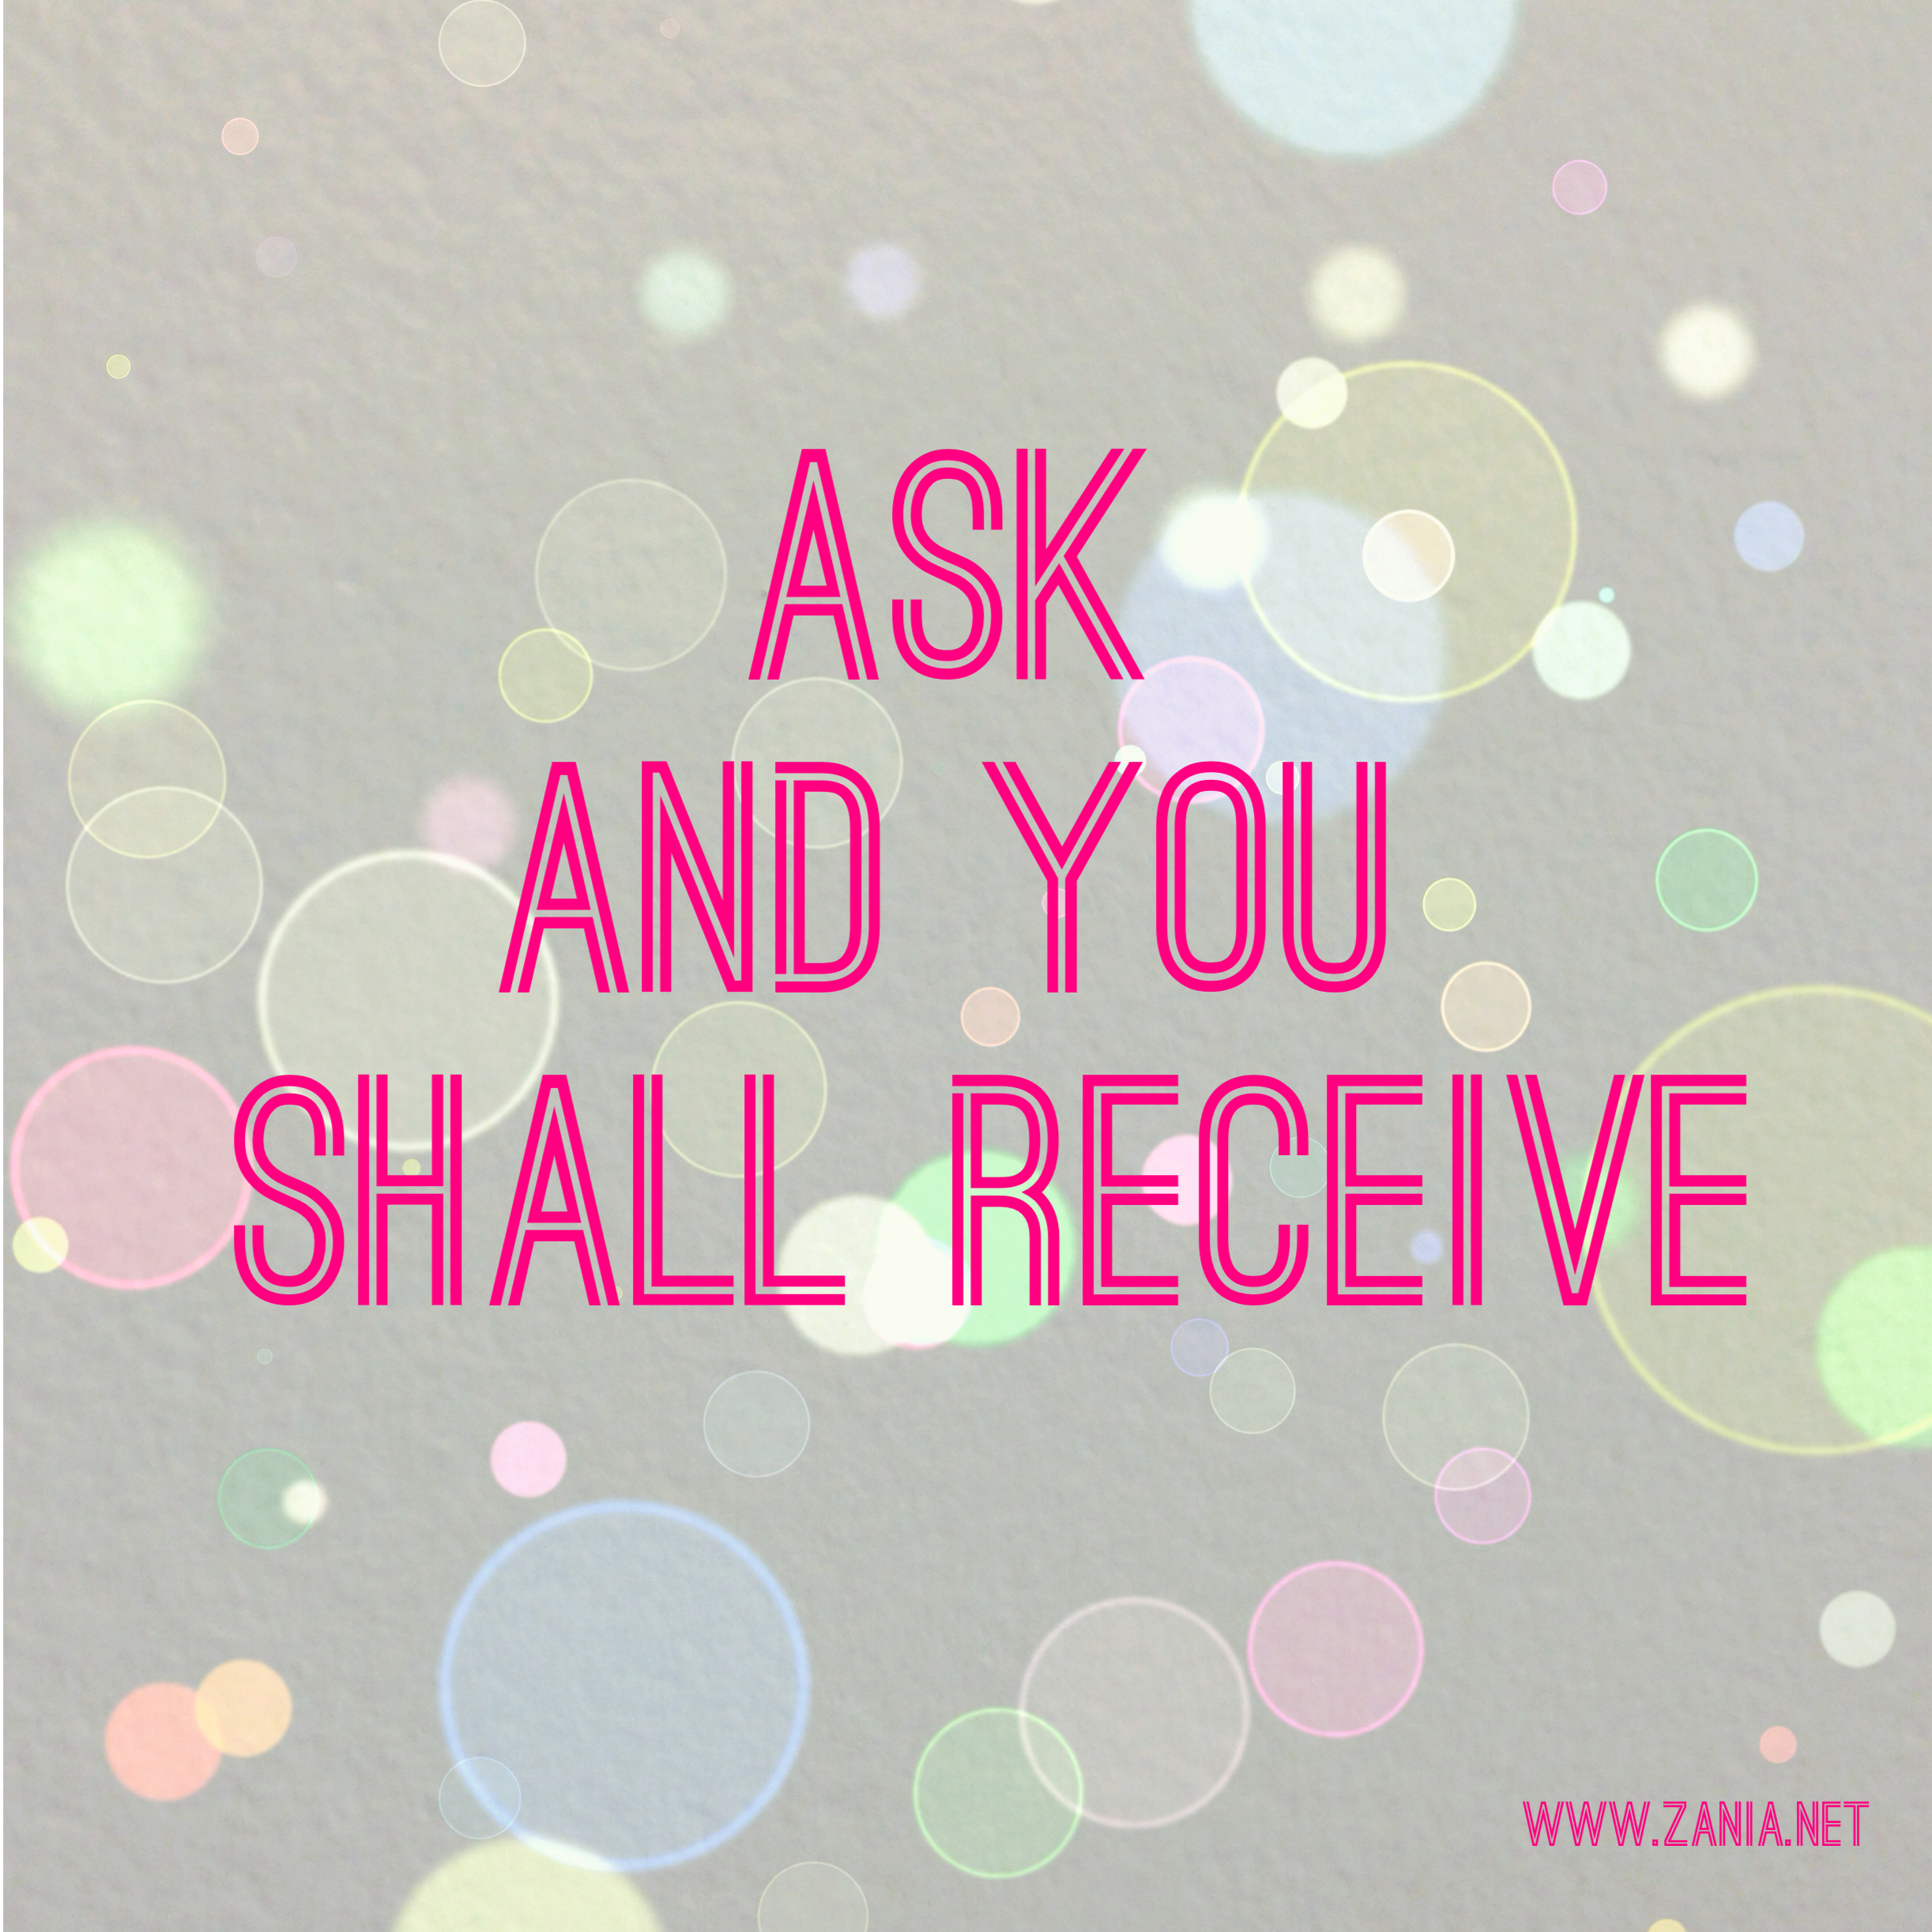 Ask and receive